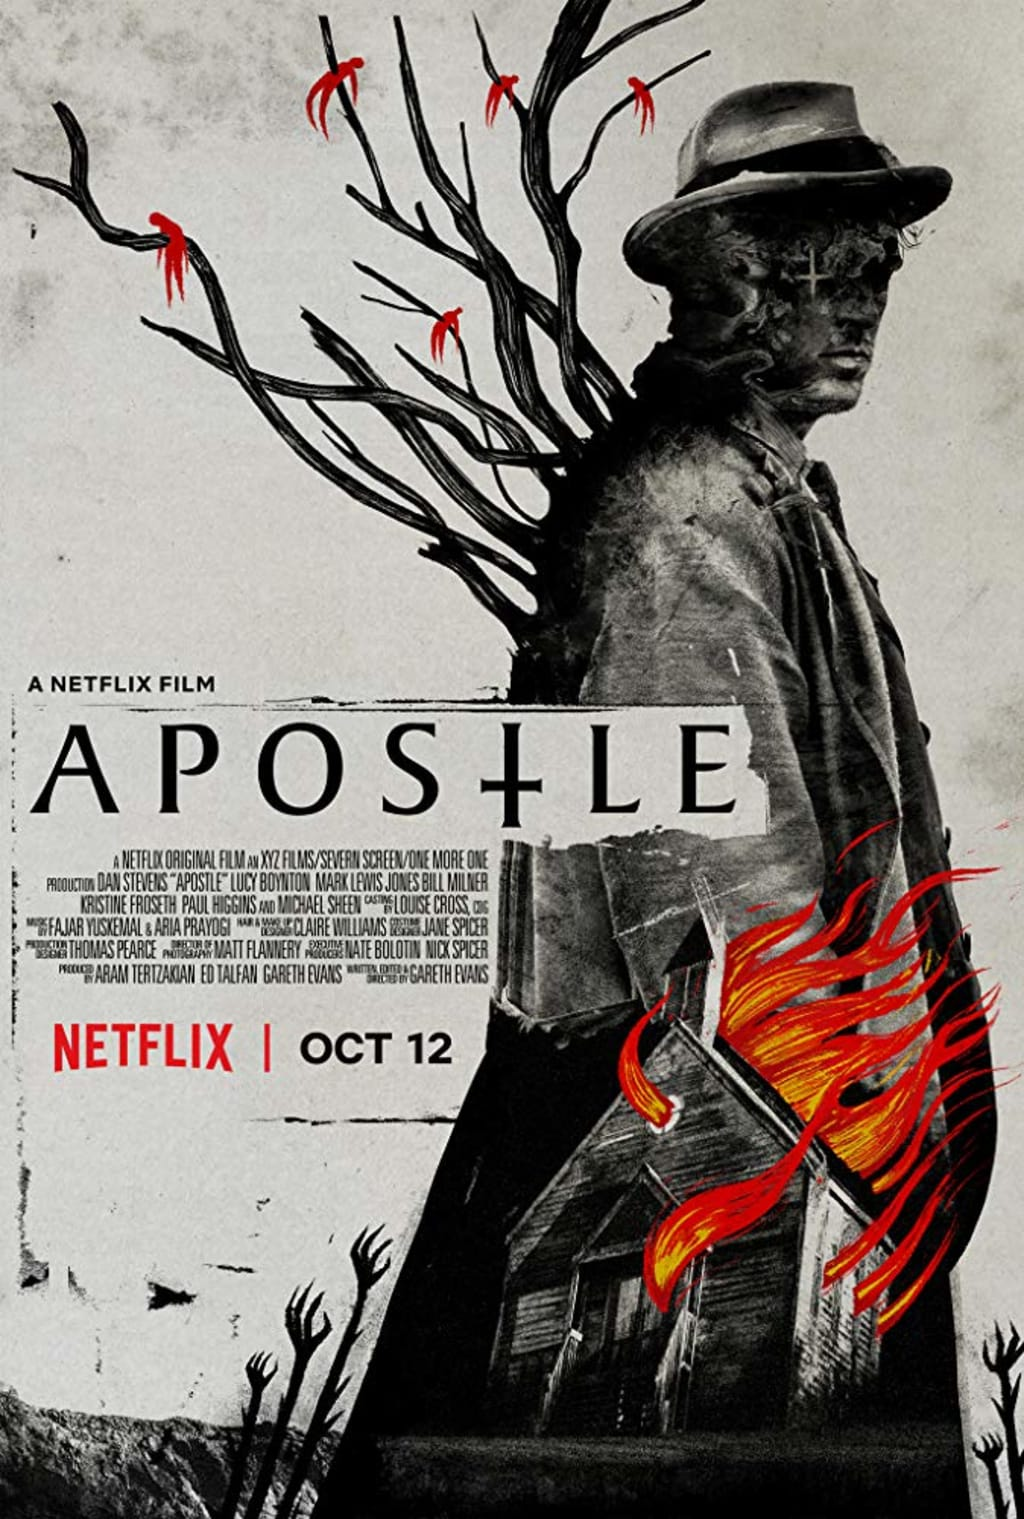 Reed Alexander's Horror Review of 'Apostle' (2018)